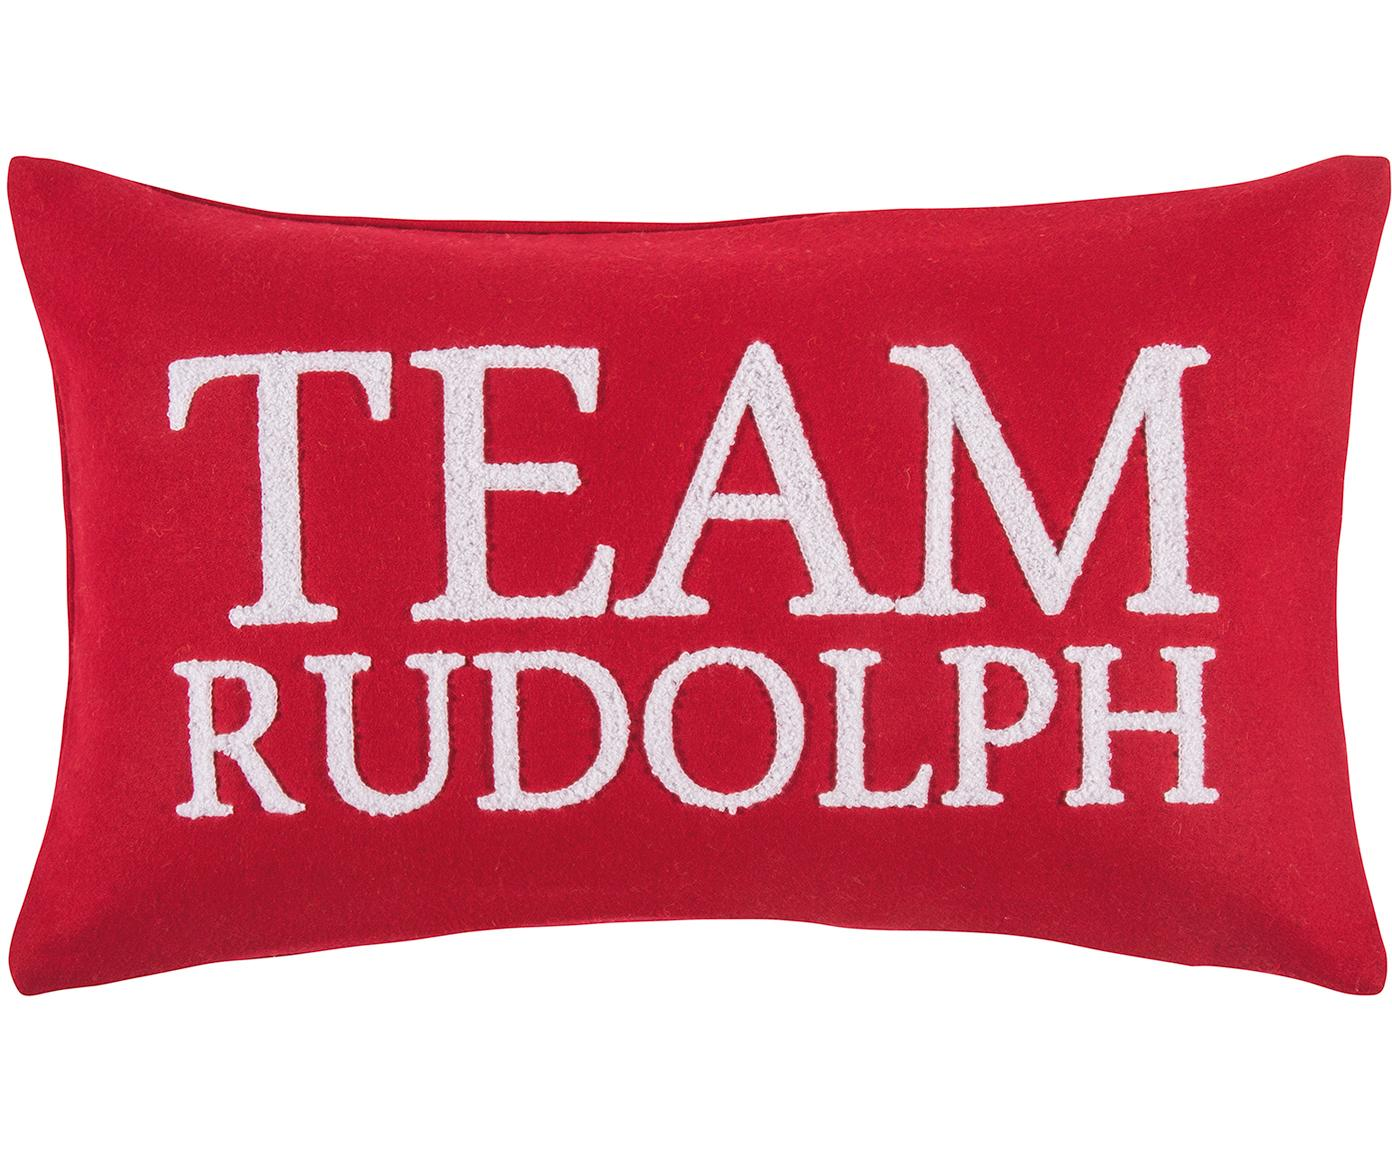 Kussenhoes Rudolph, 60% wol, 40% polyester, Rood, wit, 30 x 50 cm